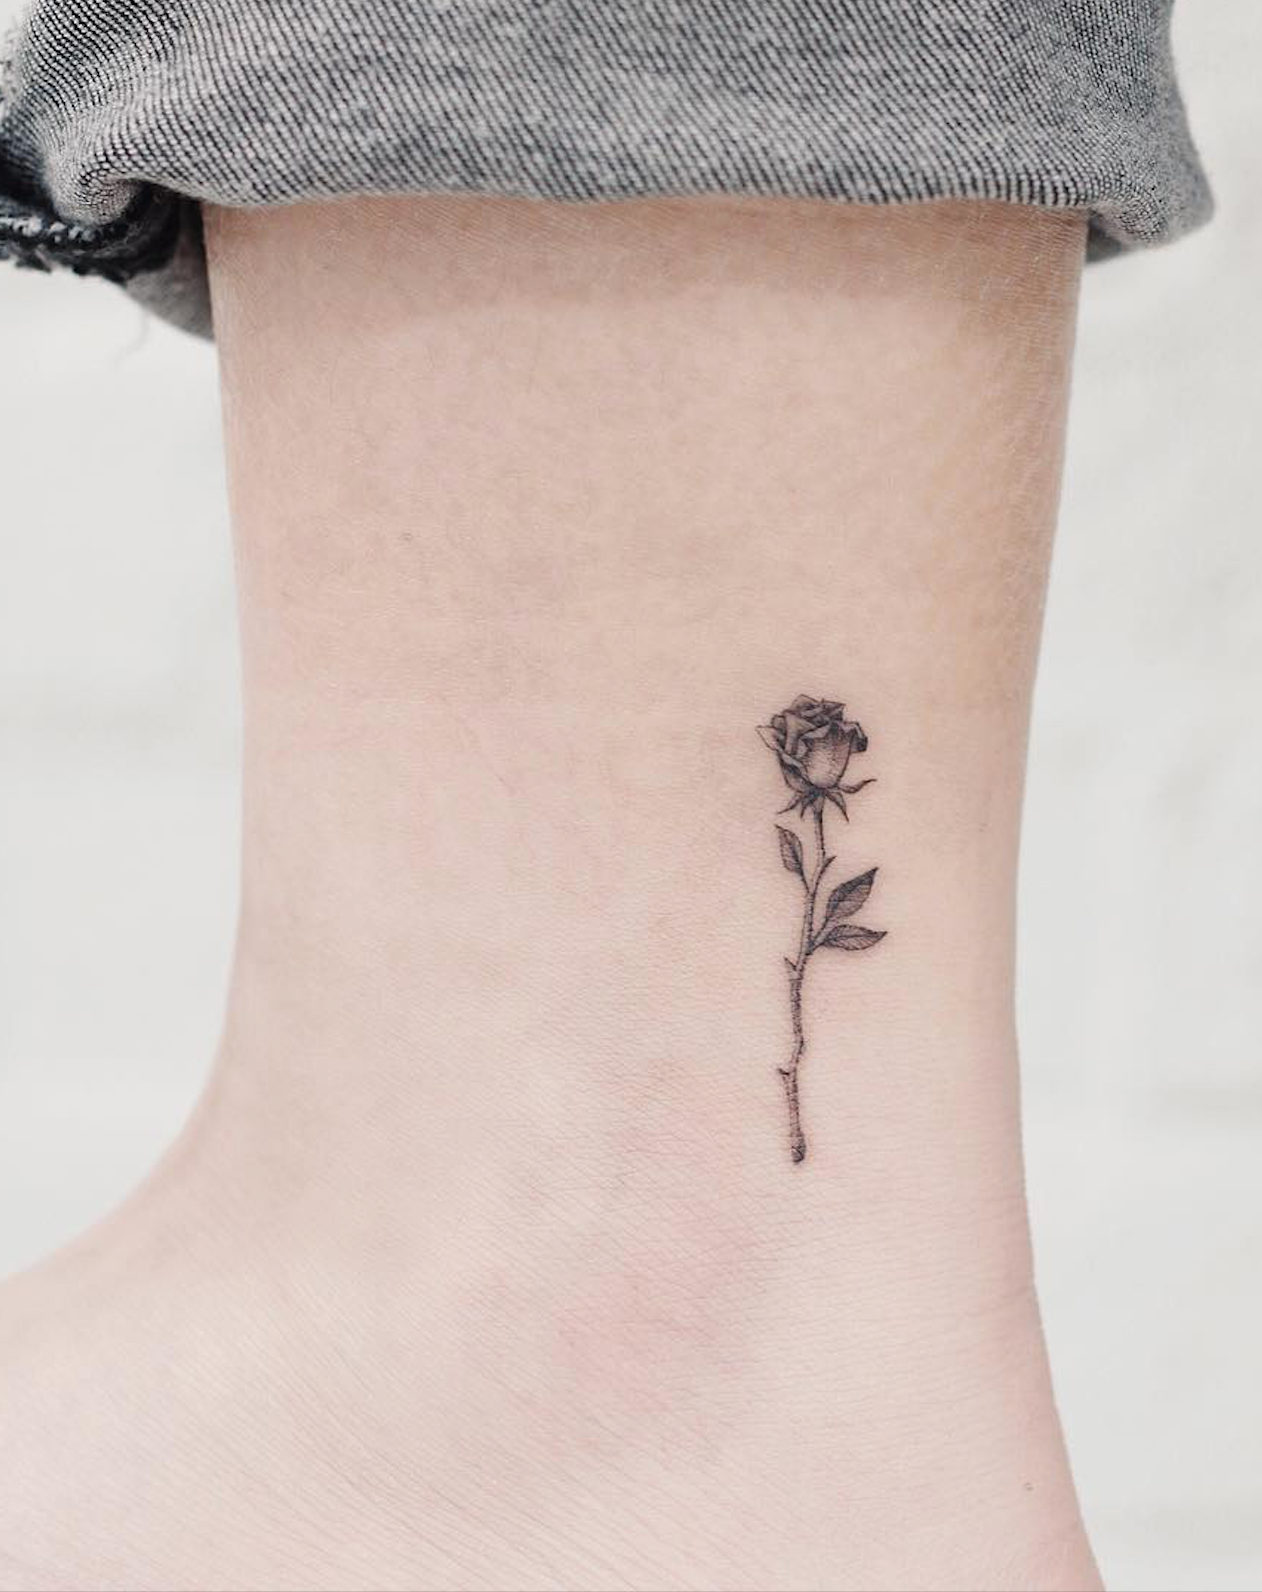 Minimalist Flower Tattoos According To Your Personality With Images Artsy Tattoos Feminine Tattoos Small Flower Tattoos